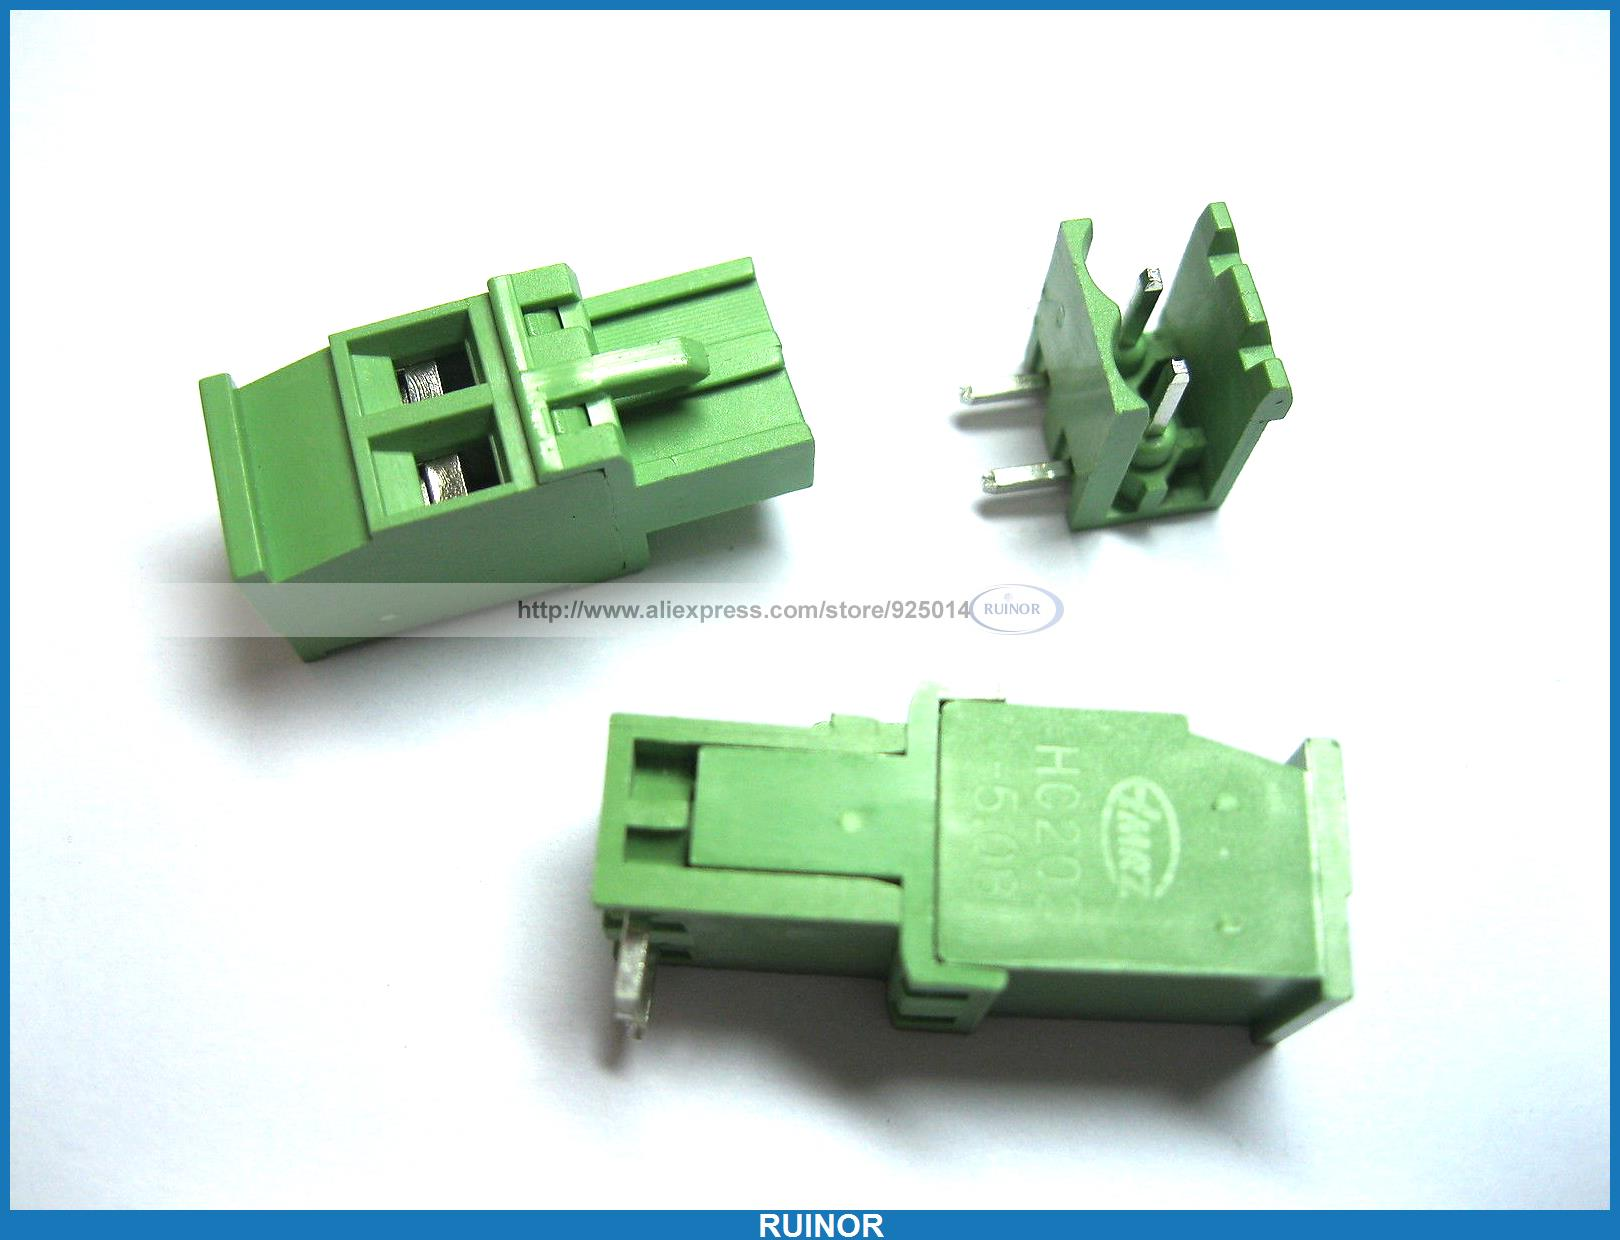 36 Pcs 5 08A 5 08mm Angle 2 Pin Screw Terminal Block Connector Pluggable Type 100 pcs green 6 pin 5 08mm screw terminal block connector pluggable type